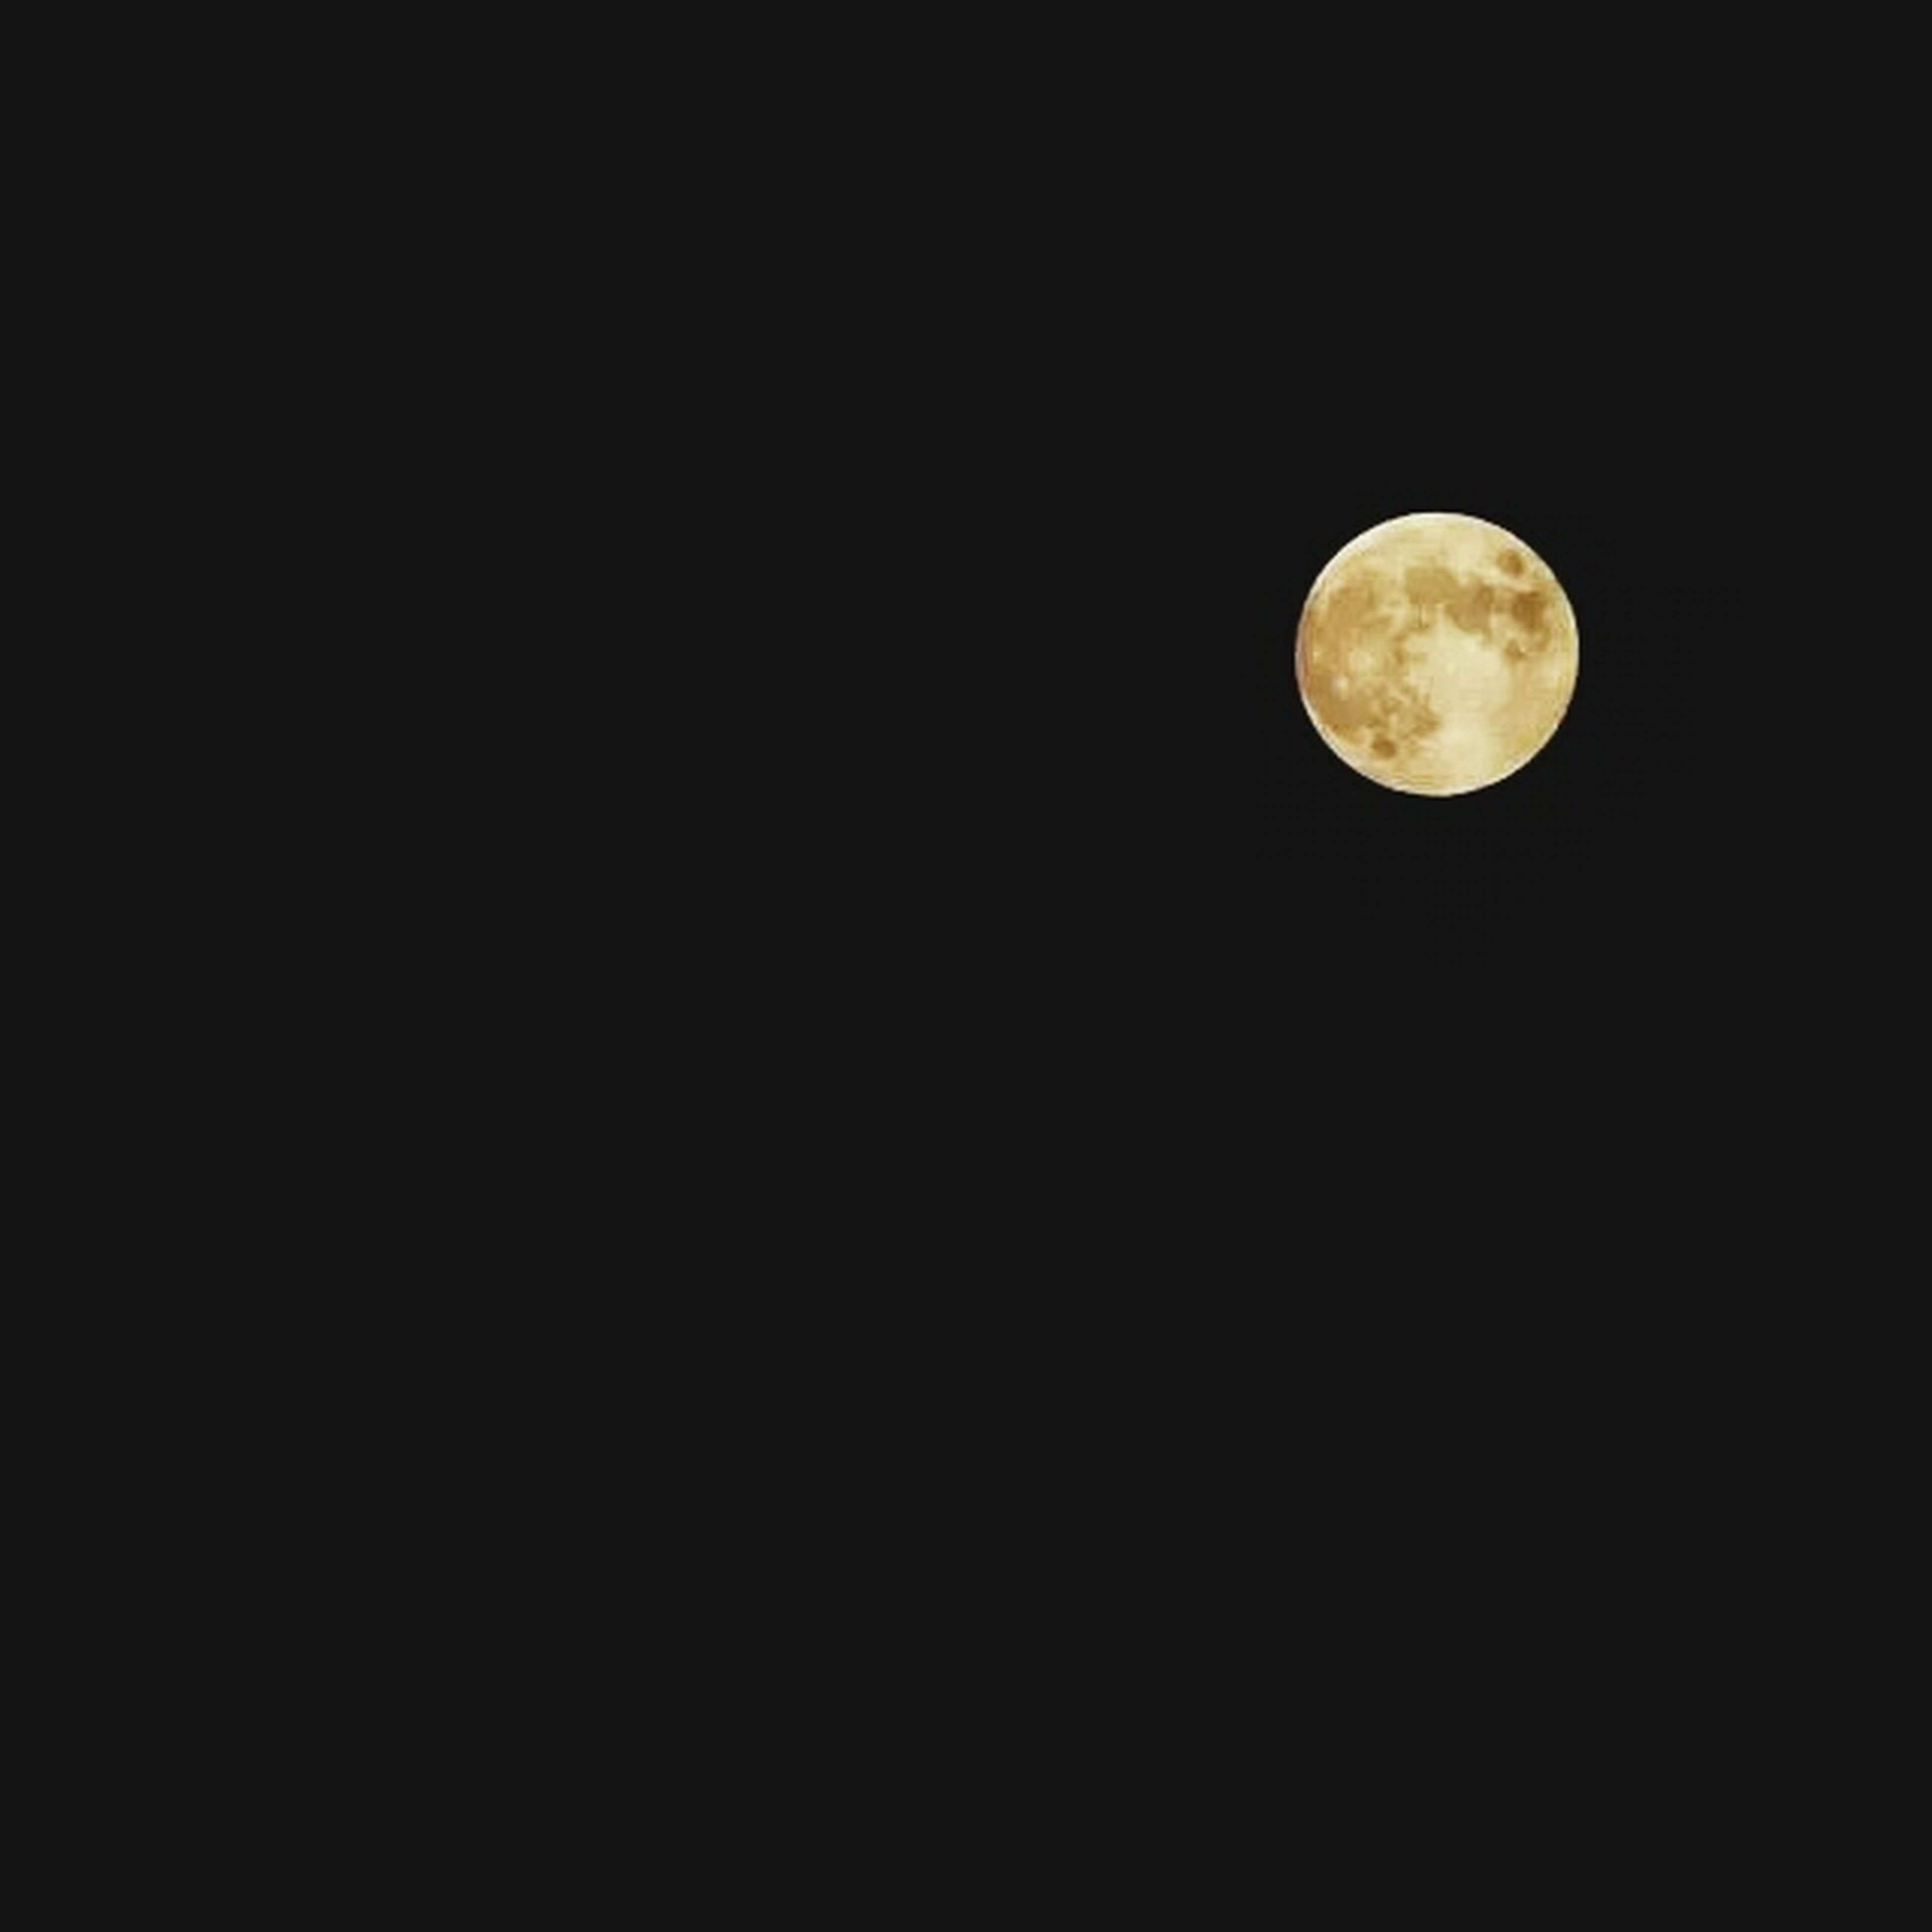 moon, night, astronomy, full moon, planetary moon, copy space, low angle view, circle, beauty in nature, space exploration, moon surface, clear sky, tranquil scene, scenics, tranquility, discovery, nature, exploration, dark, sky